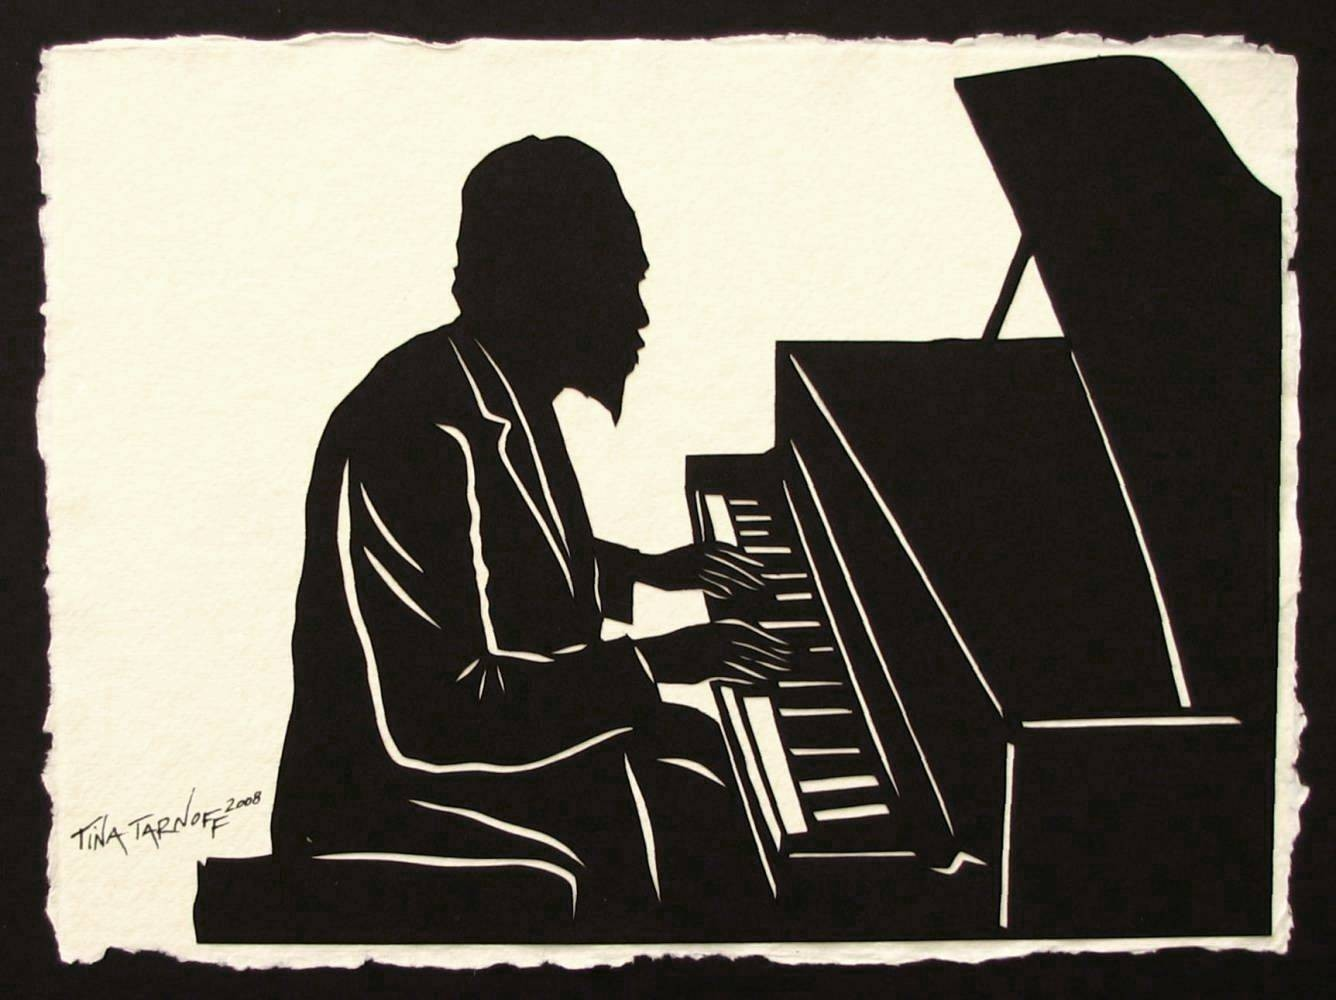 THELONIOUS MONK Papercut - Hand-Cut Silhouette